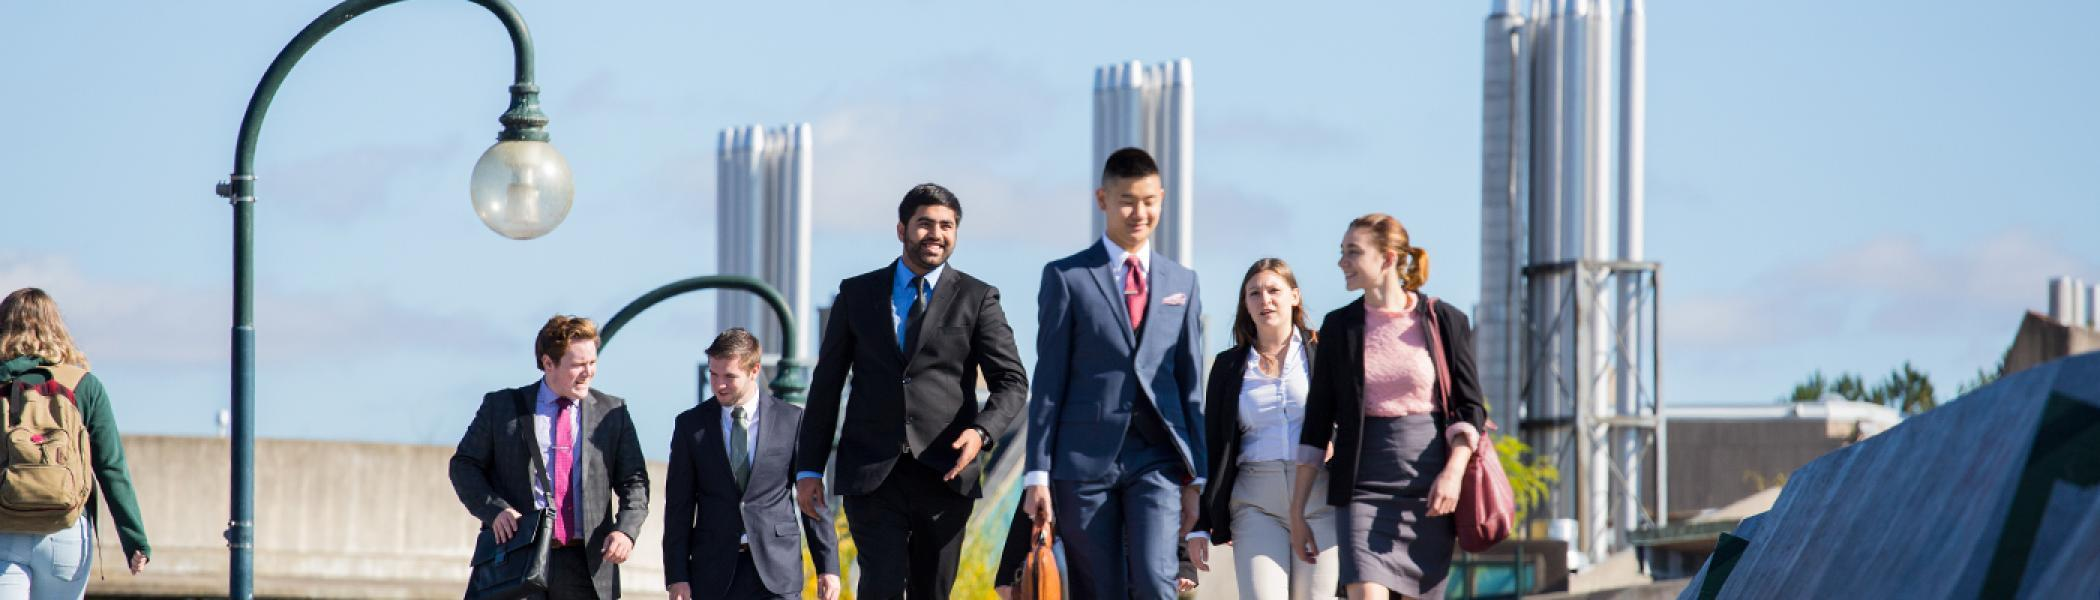 Masters of Management students walking together in a group.